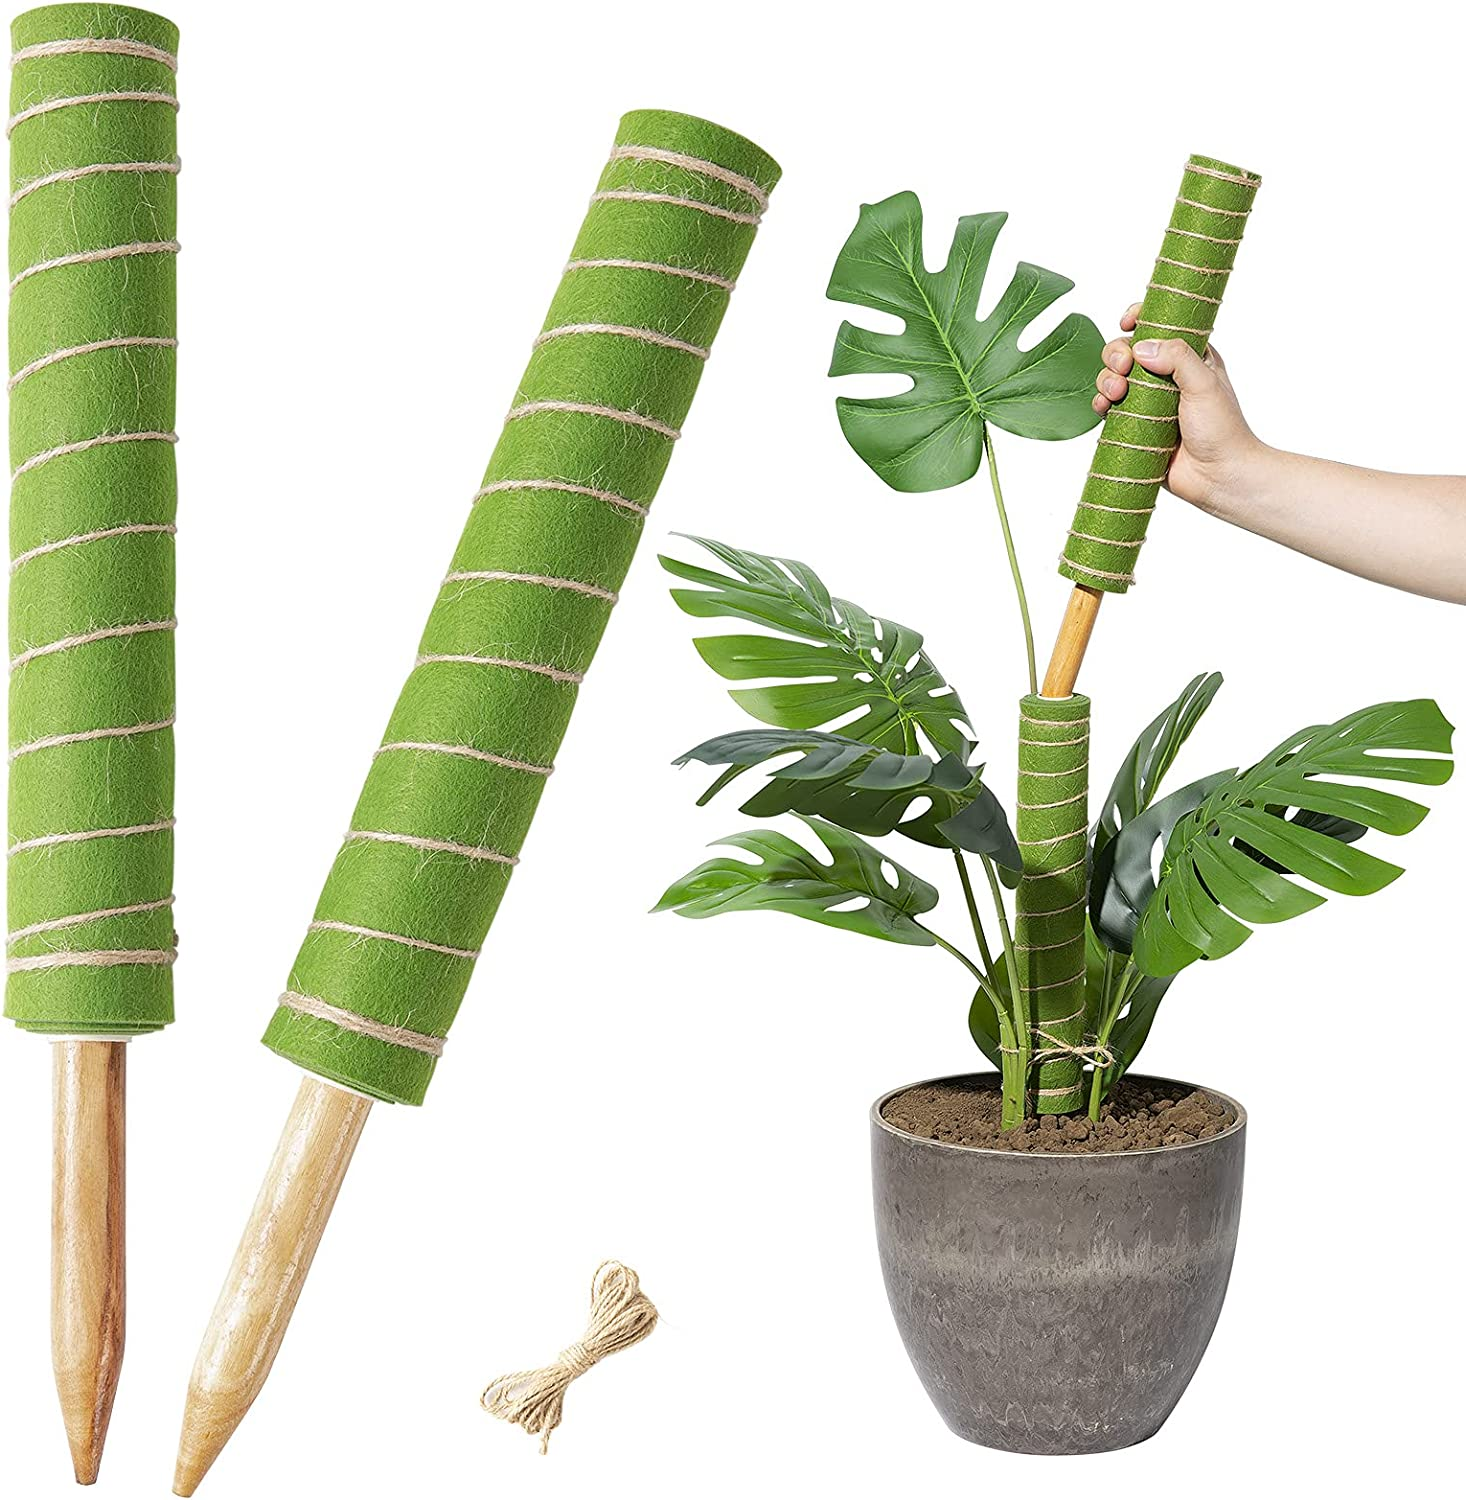 Yangbaga 2pcs 28.7in Moss Pole Climbing for Plants Fabric Industry Sale special price No. 1